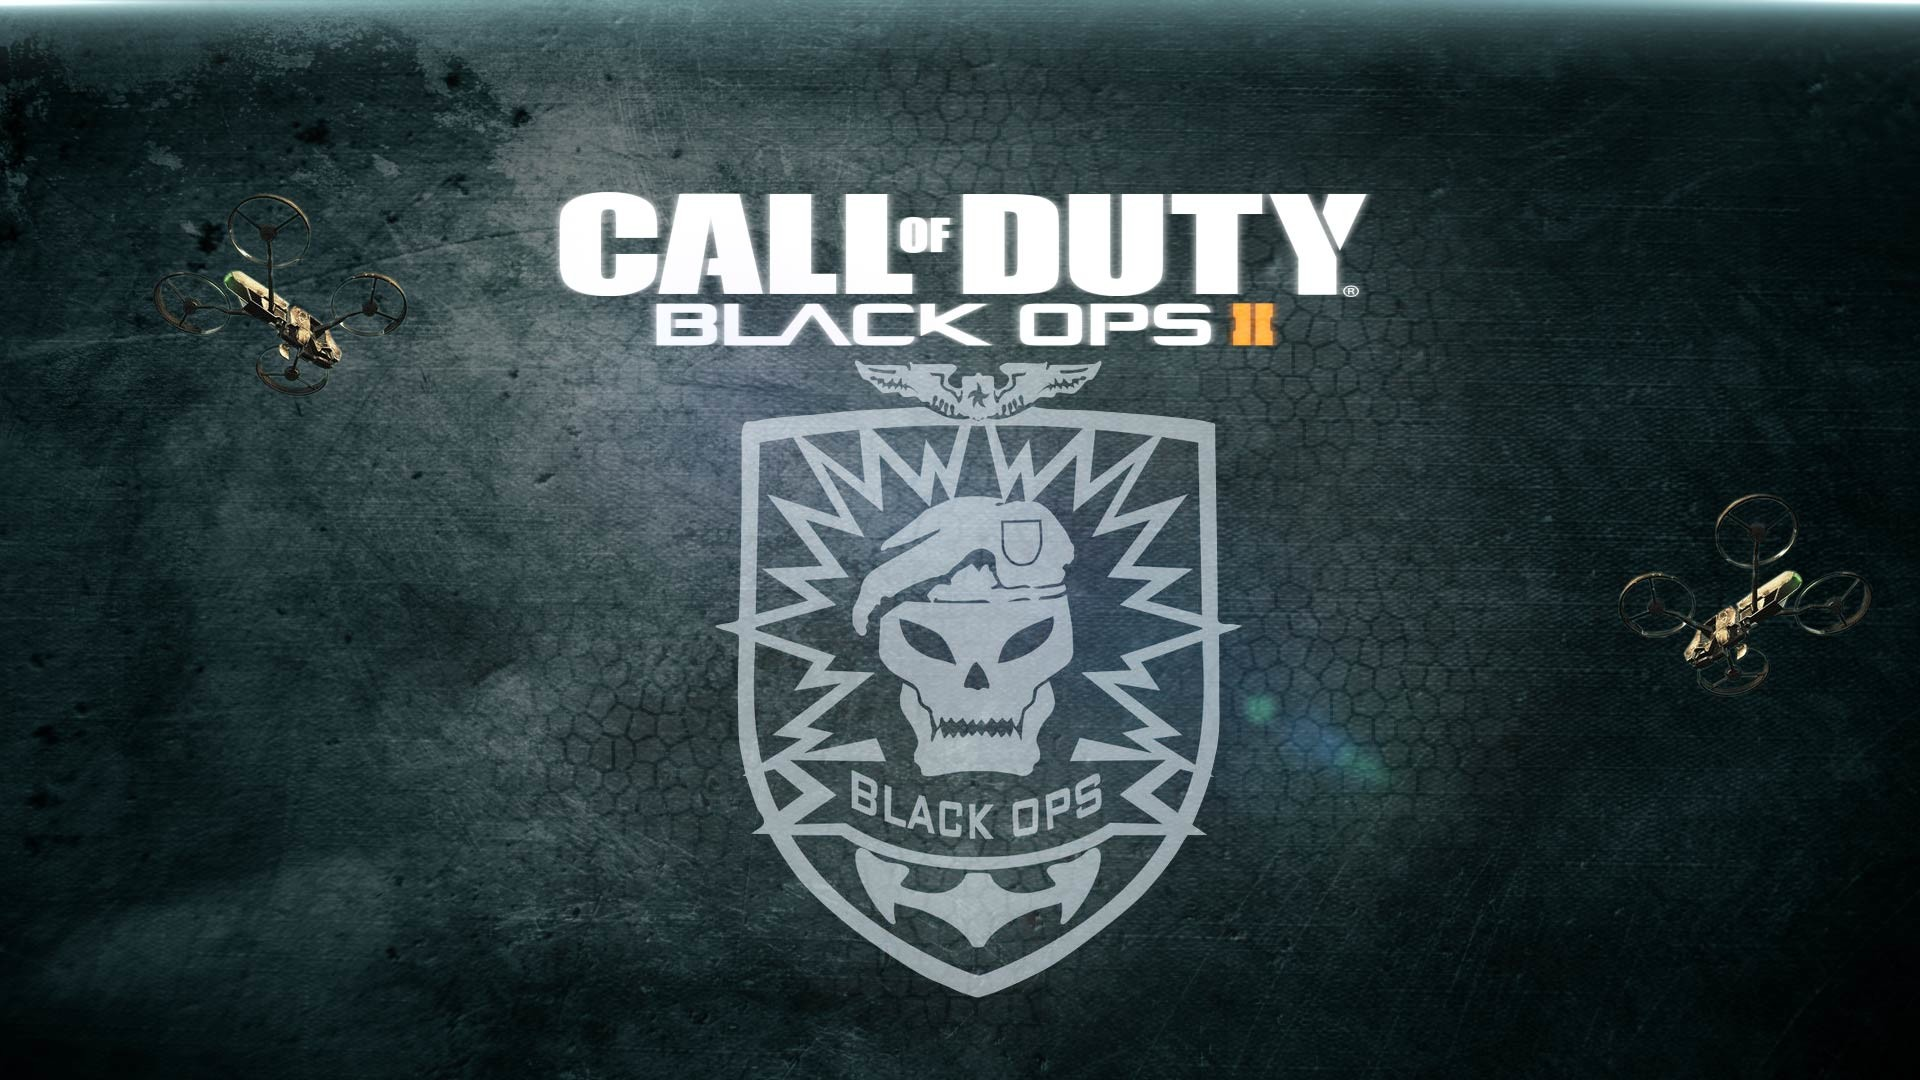 Wallpapers For > Call Of Duty Black Ops 2 Wallpaper Hd